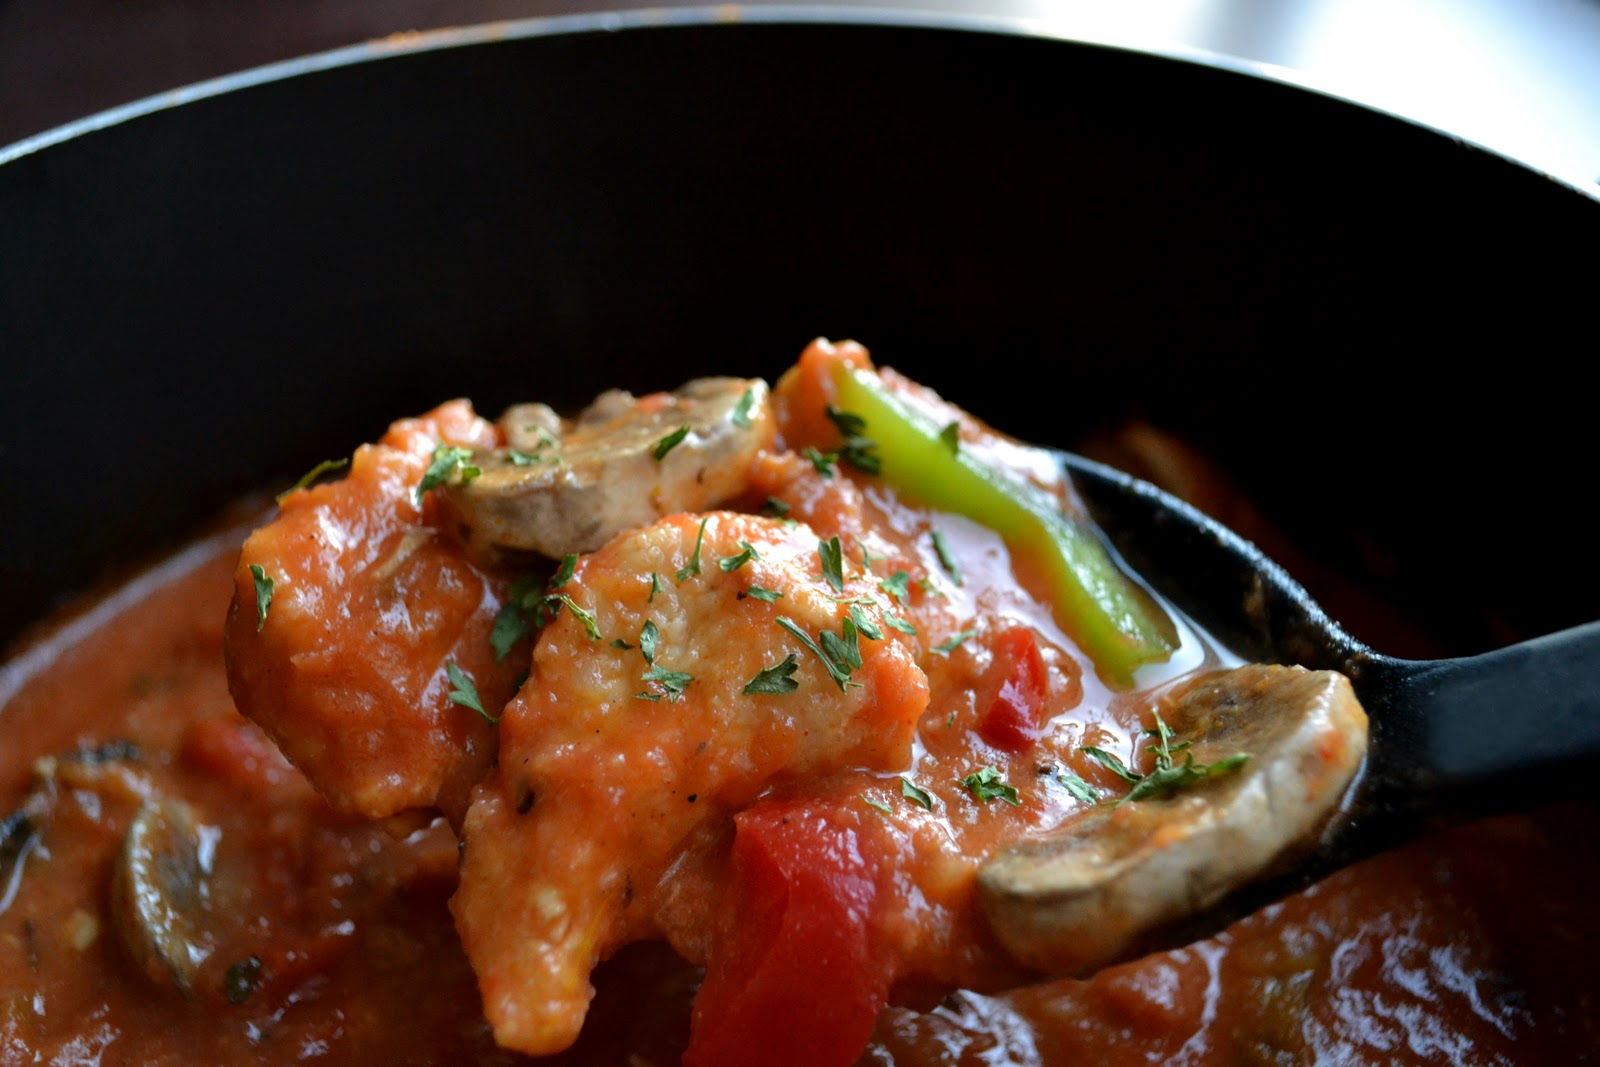 Lawyer Loves Lunch: Comforting Chicken Cacciatore